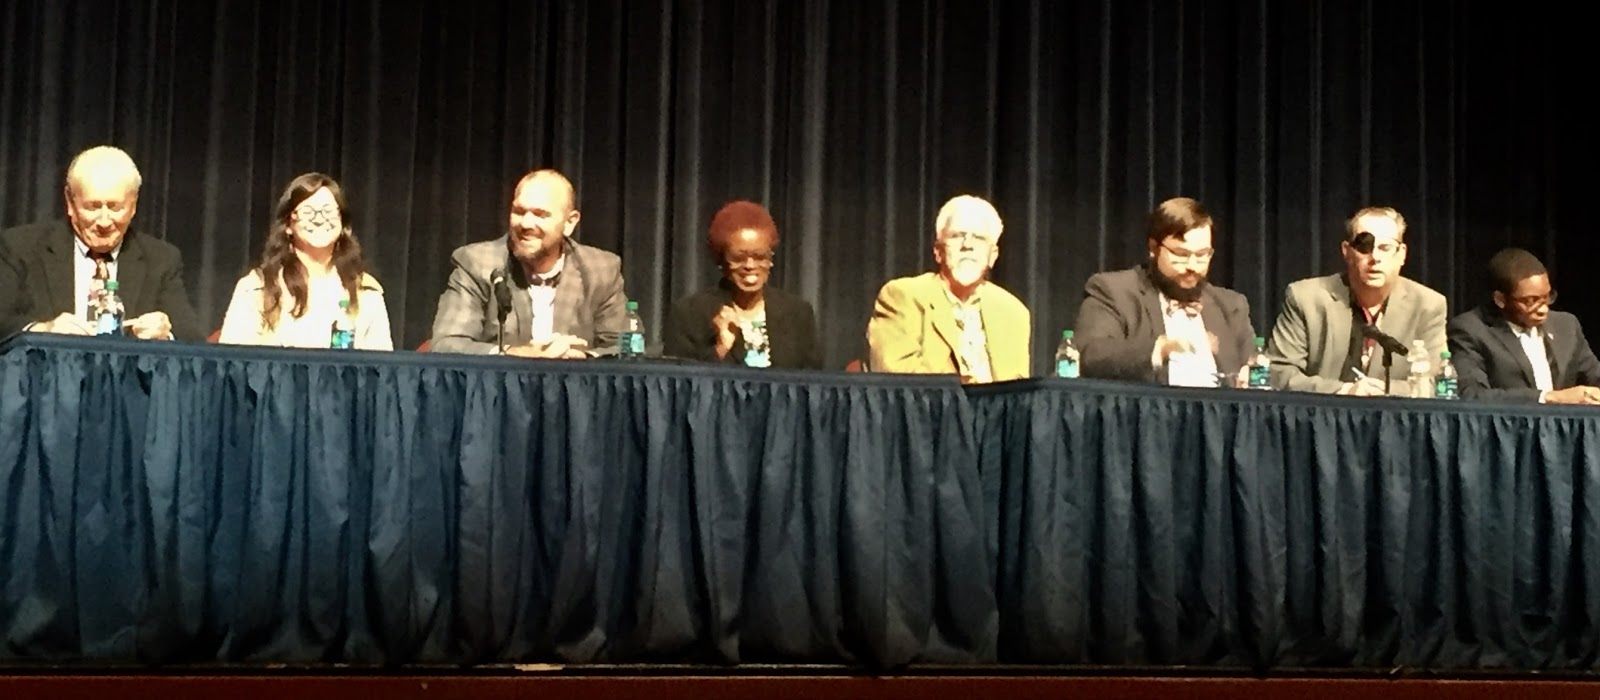 middletowneye: Board of Education Candidates Appear At